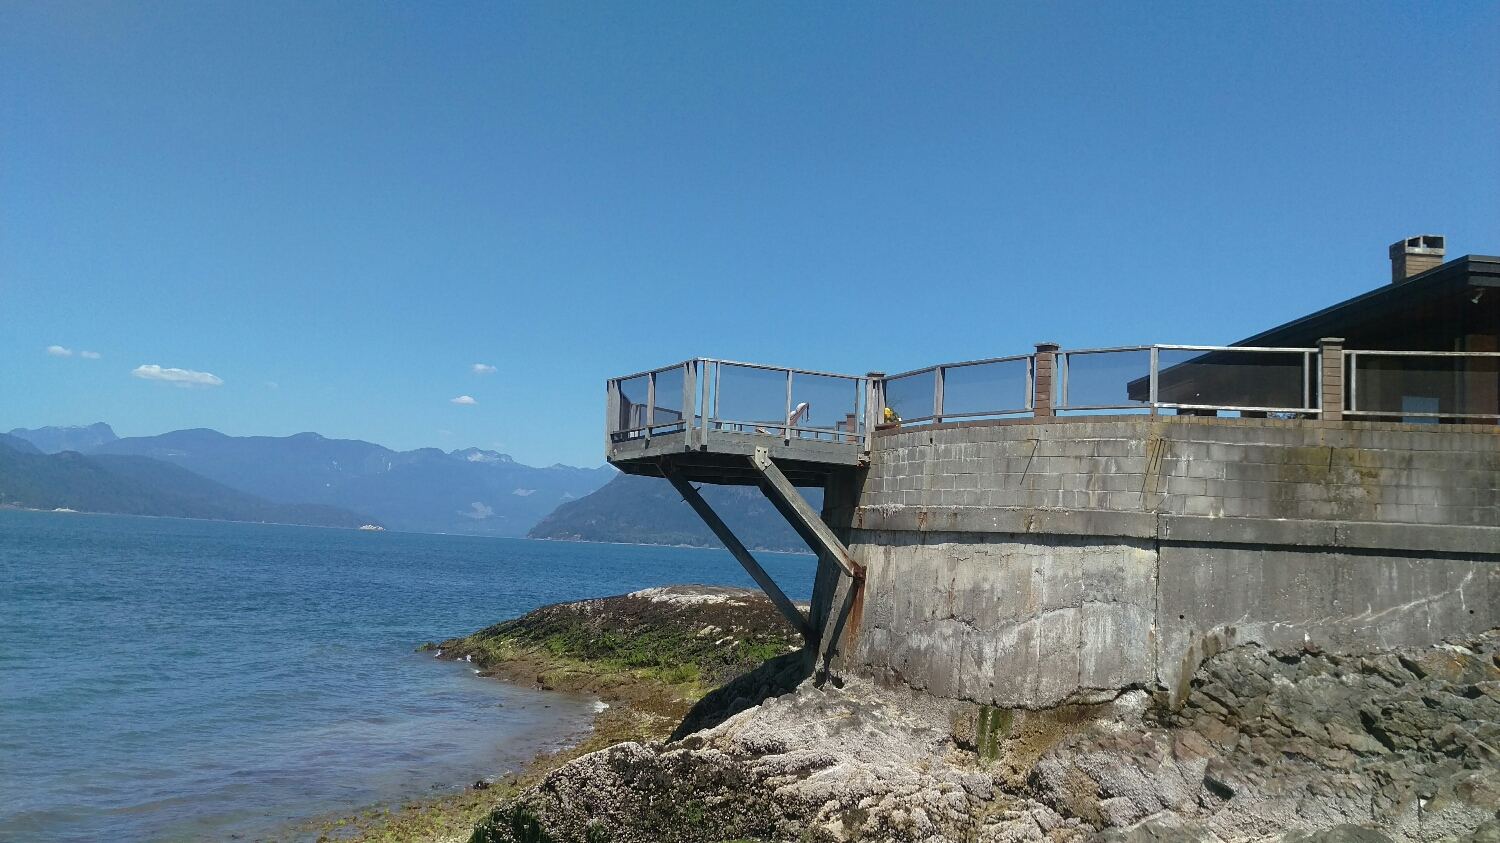 The dream house overlooking what I think is Bowen Island....or Boyers Island.